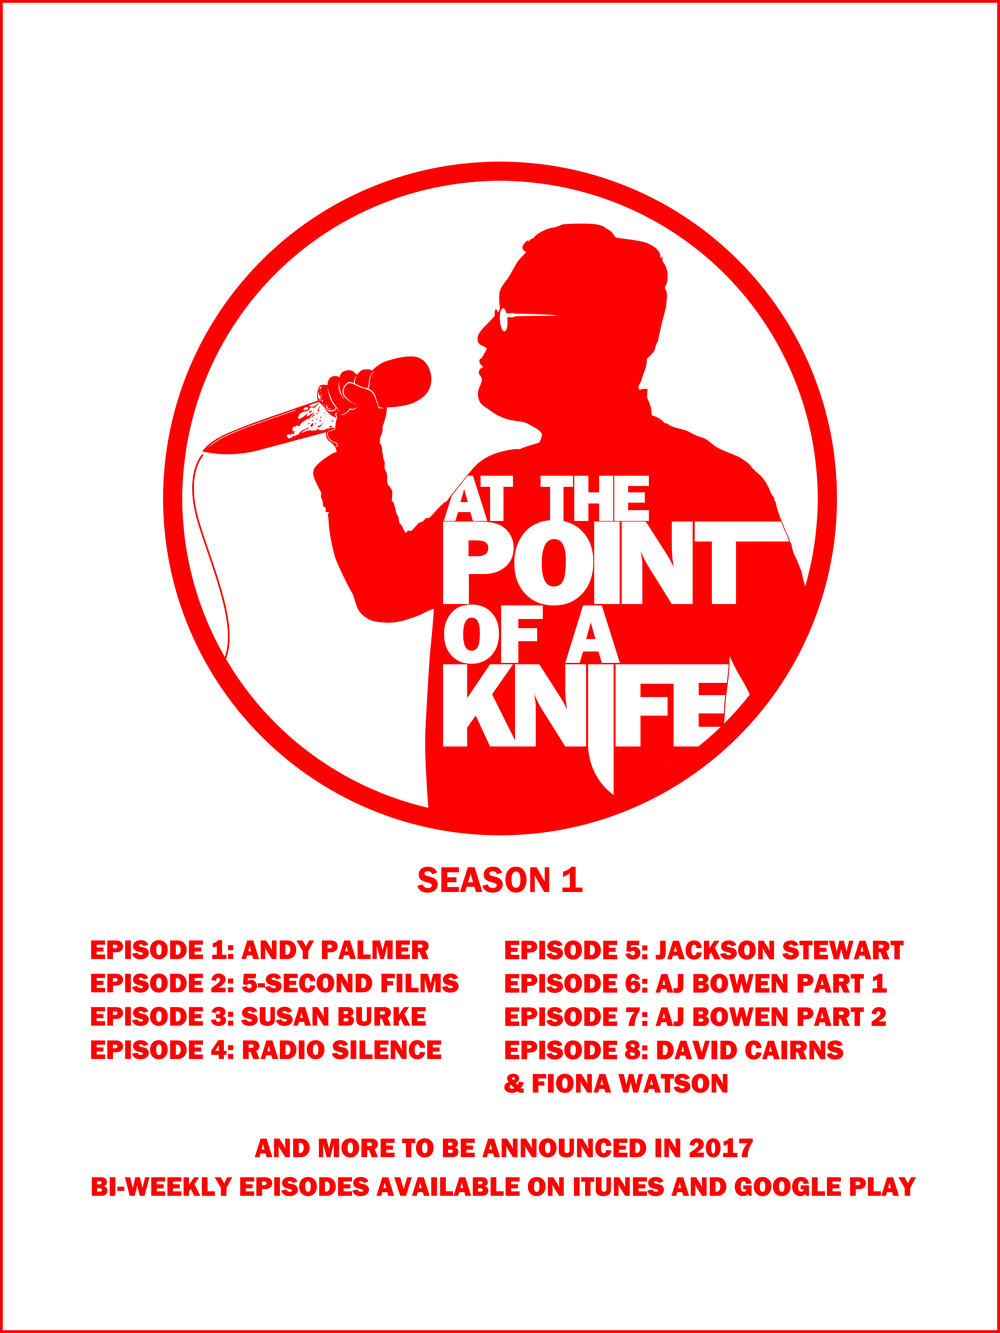 At The Point of A Knife Billing Poster - Film and TV - Jonathan B Perez - cREAtive Castle Studios.jpg